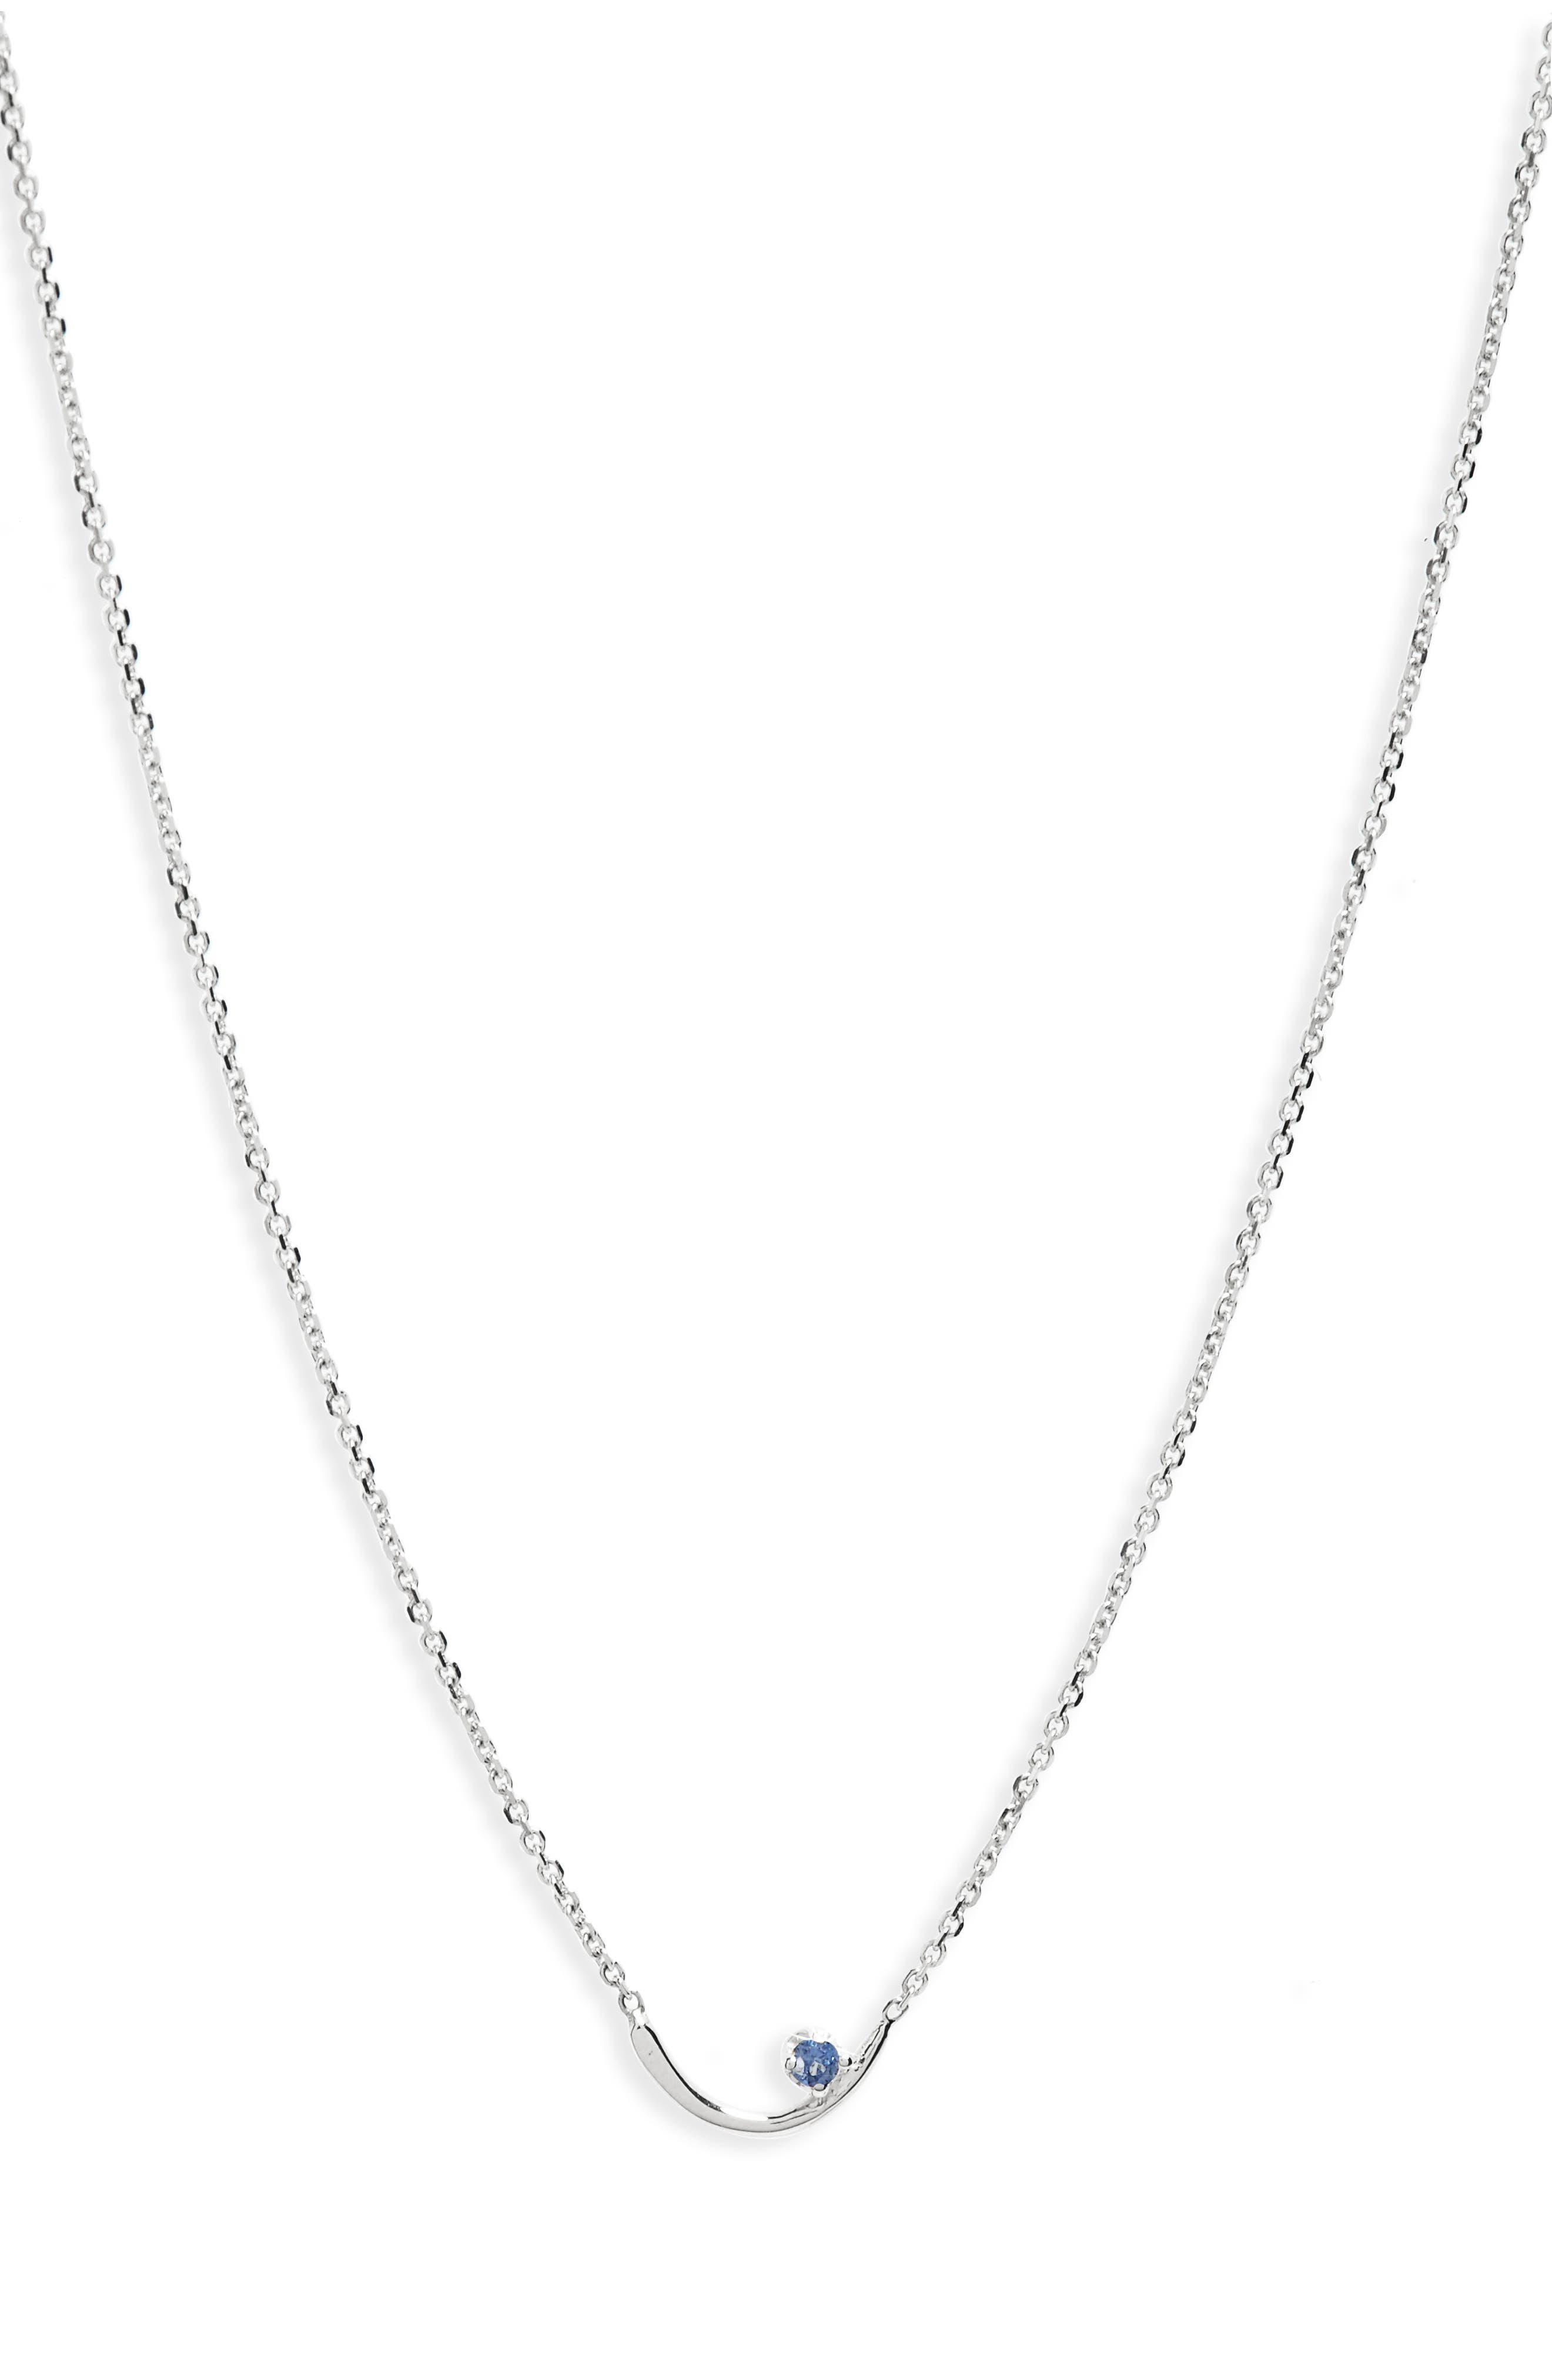 Arc Lineage Necklace,                             Main thumbnail 1, color,                             STERLING SILVER/LIGHT SAPPHIRE